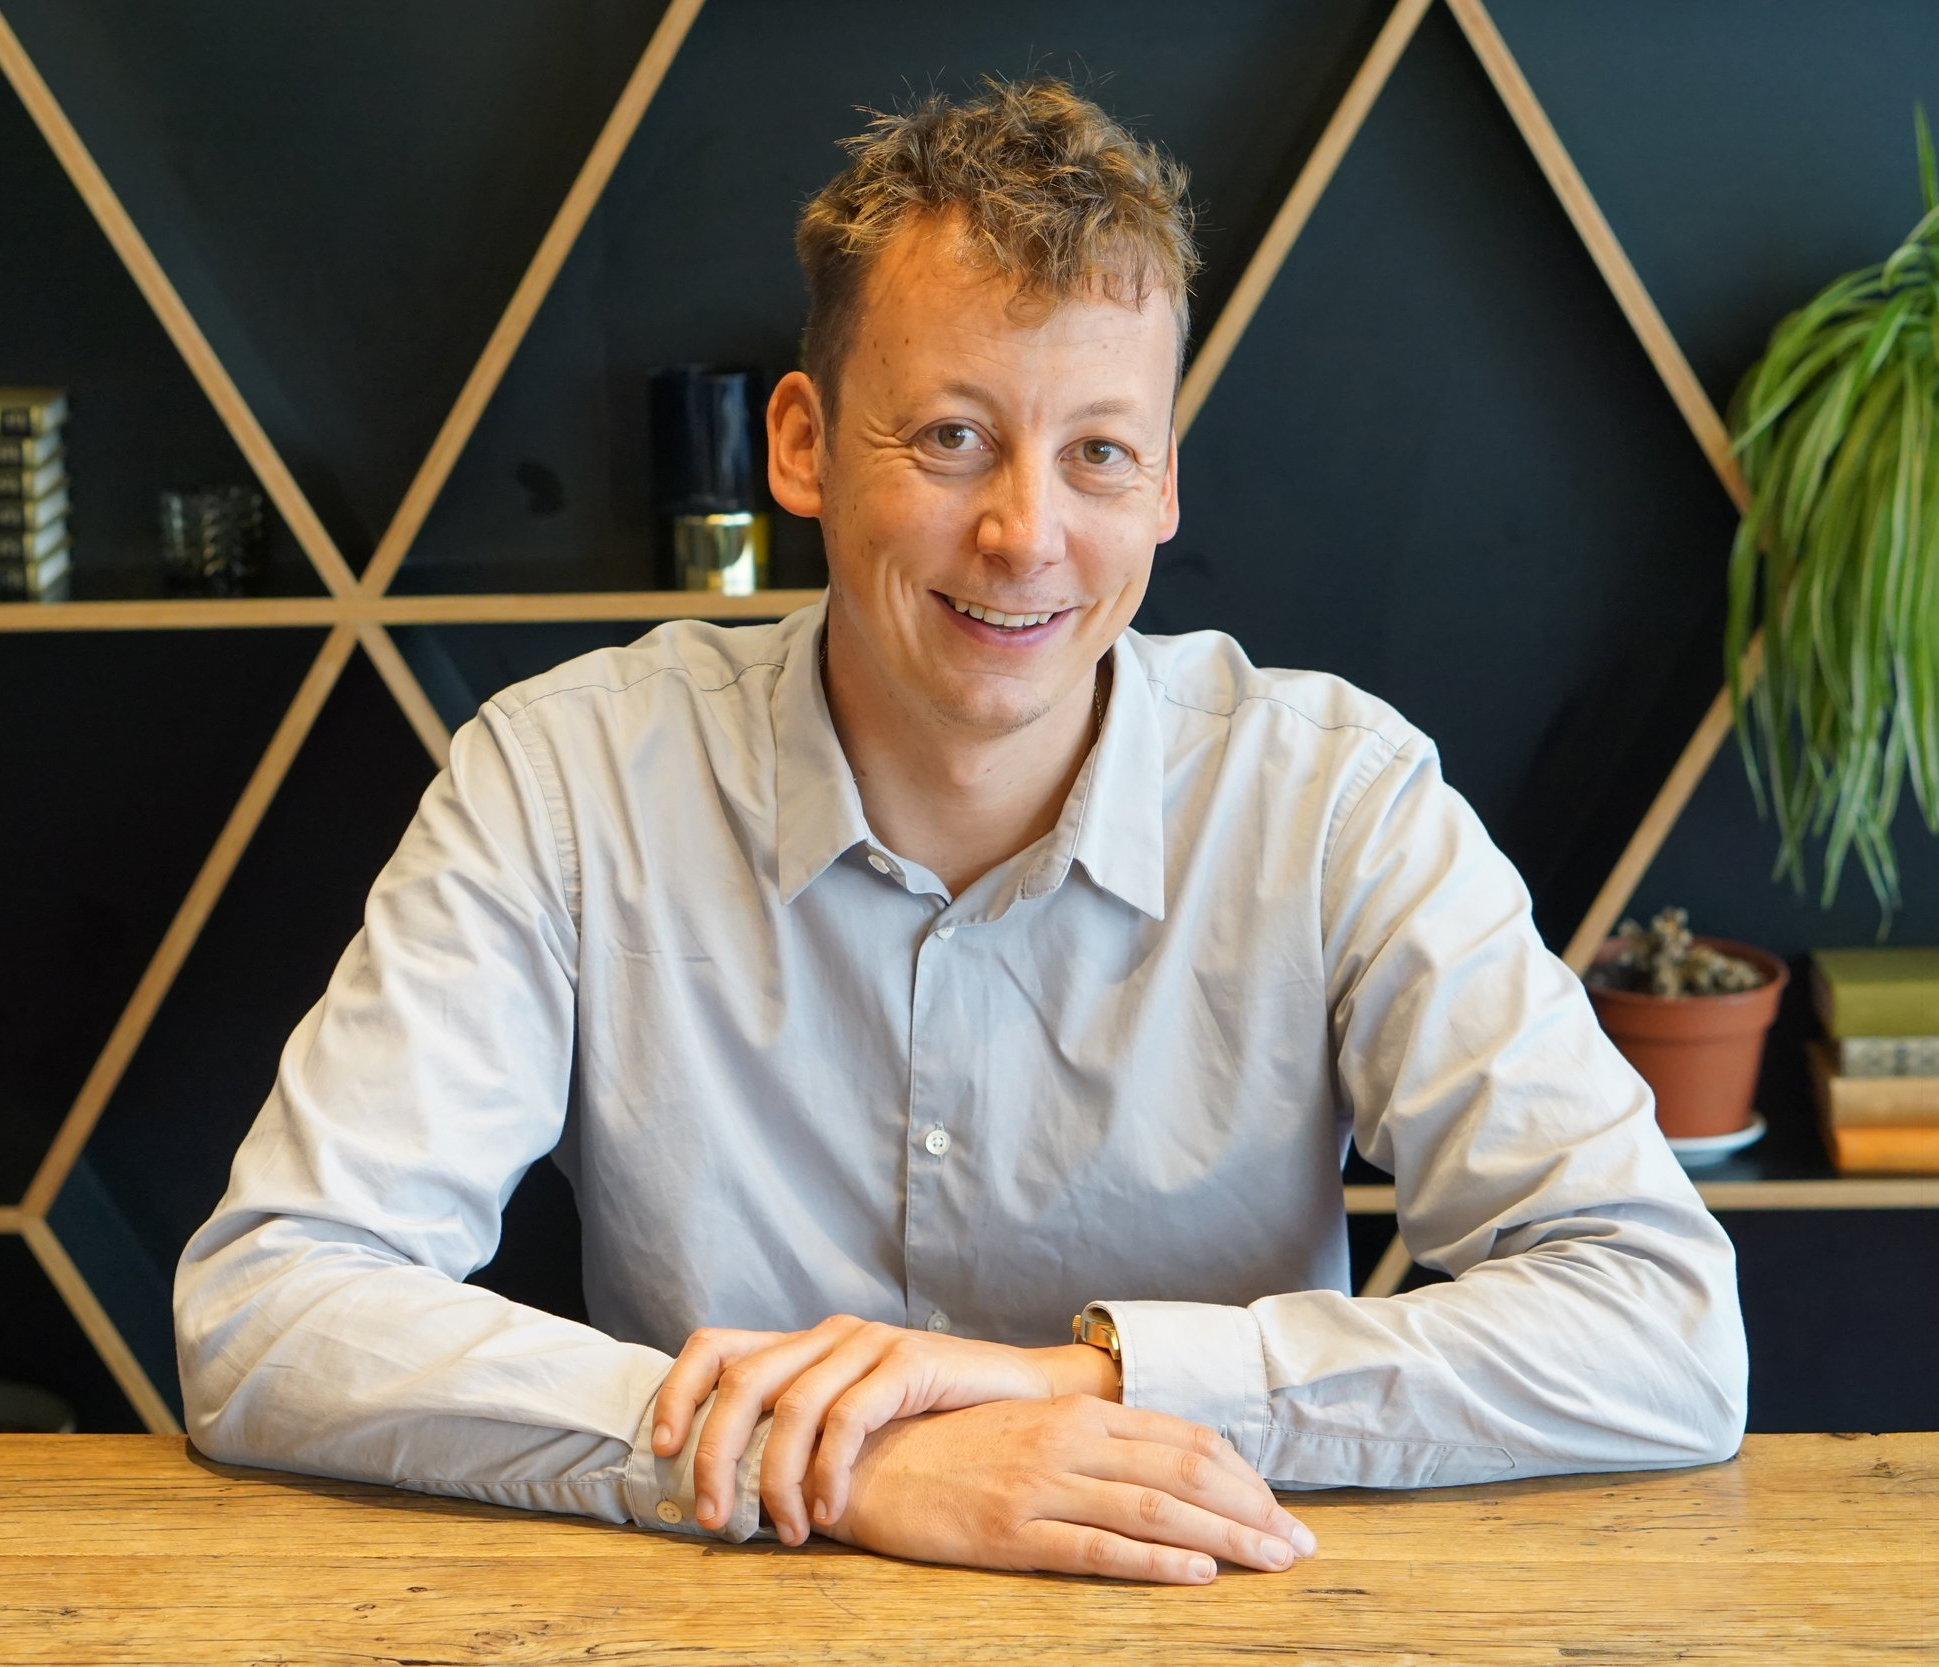 Martijn - mobile app wizard - Team: MobileRole: Product OwnerAge: 38Working at Quby for: 2 years